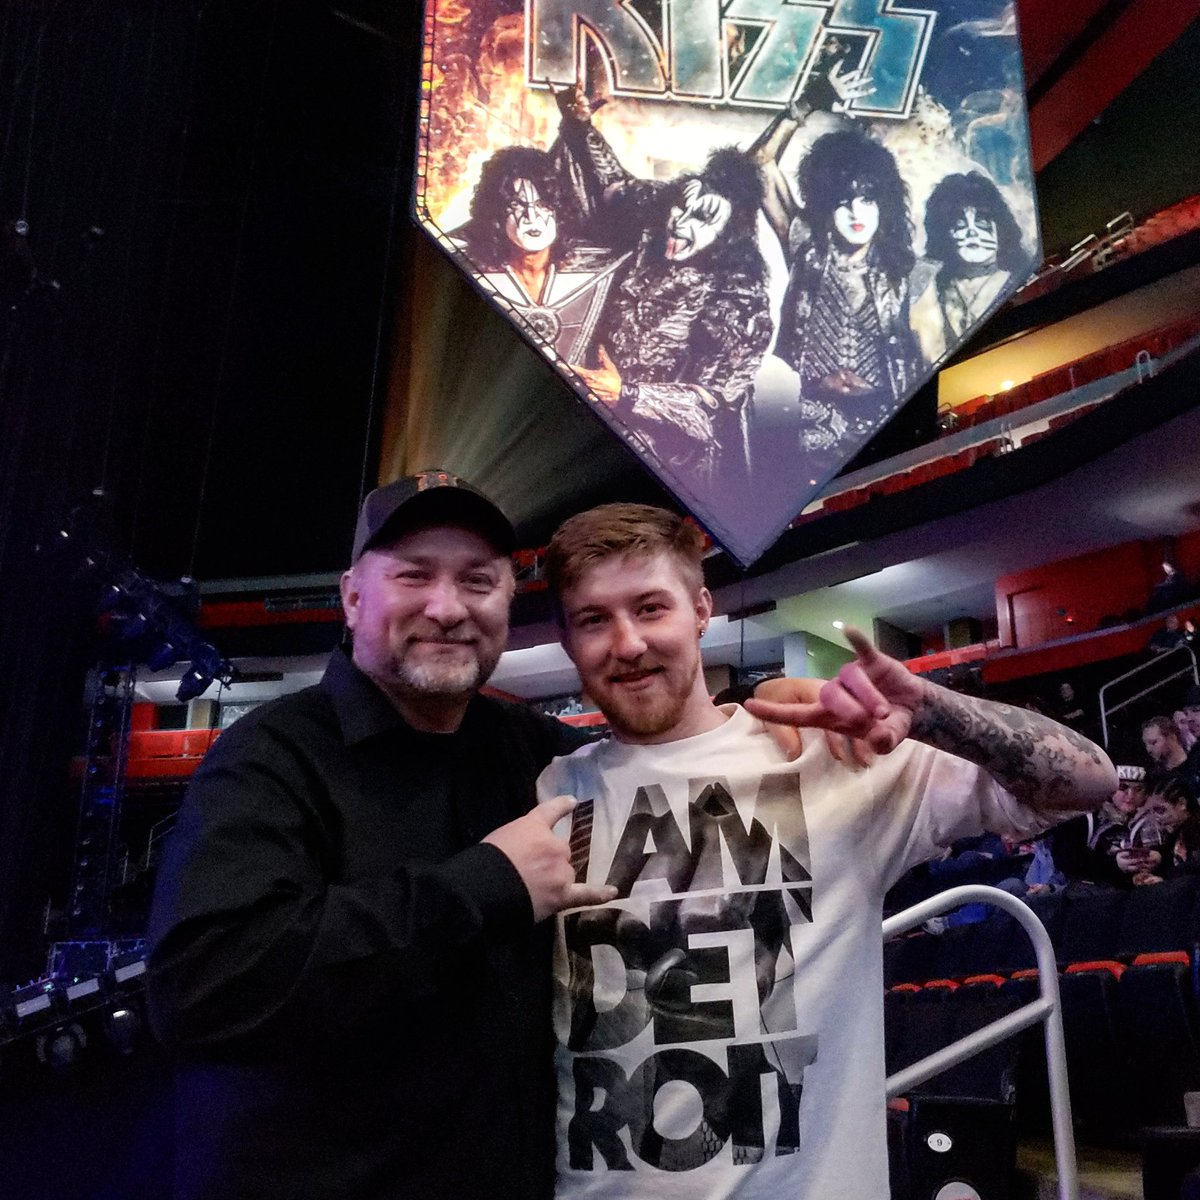 Great to share this moment with my son. #EndOfTheRoad  #kissarmy #DetroitRockCity<br>http://pic.twitter.com/vhYUwJOvu5